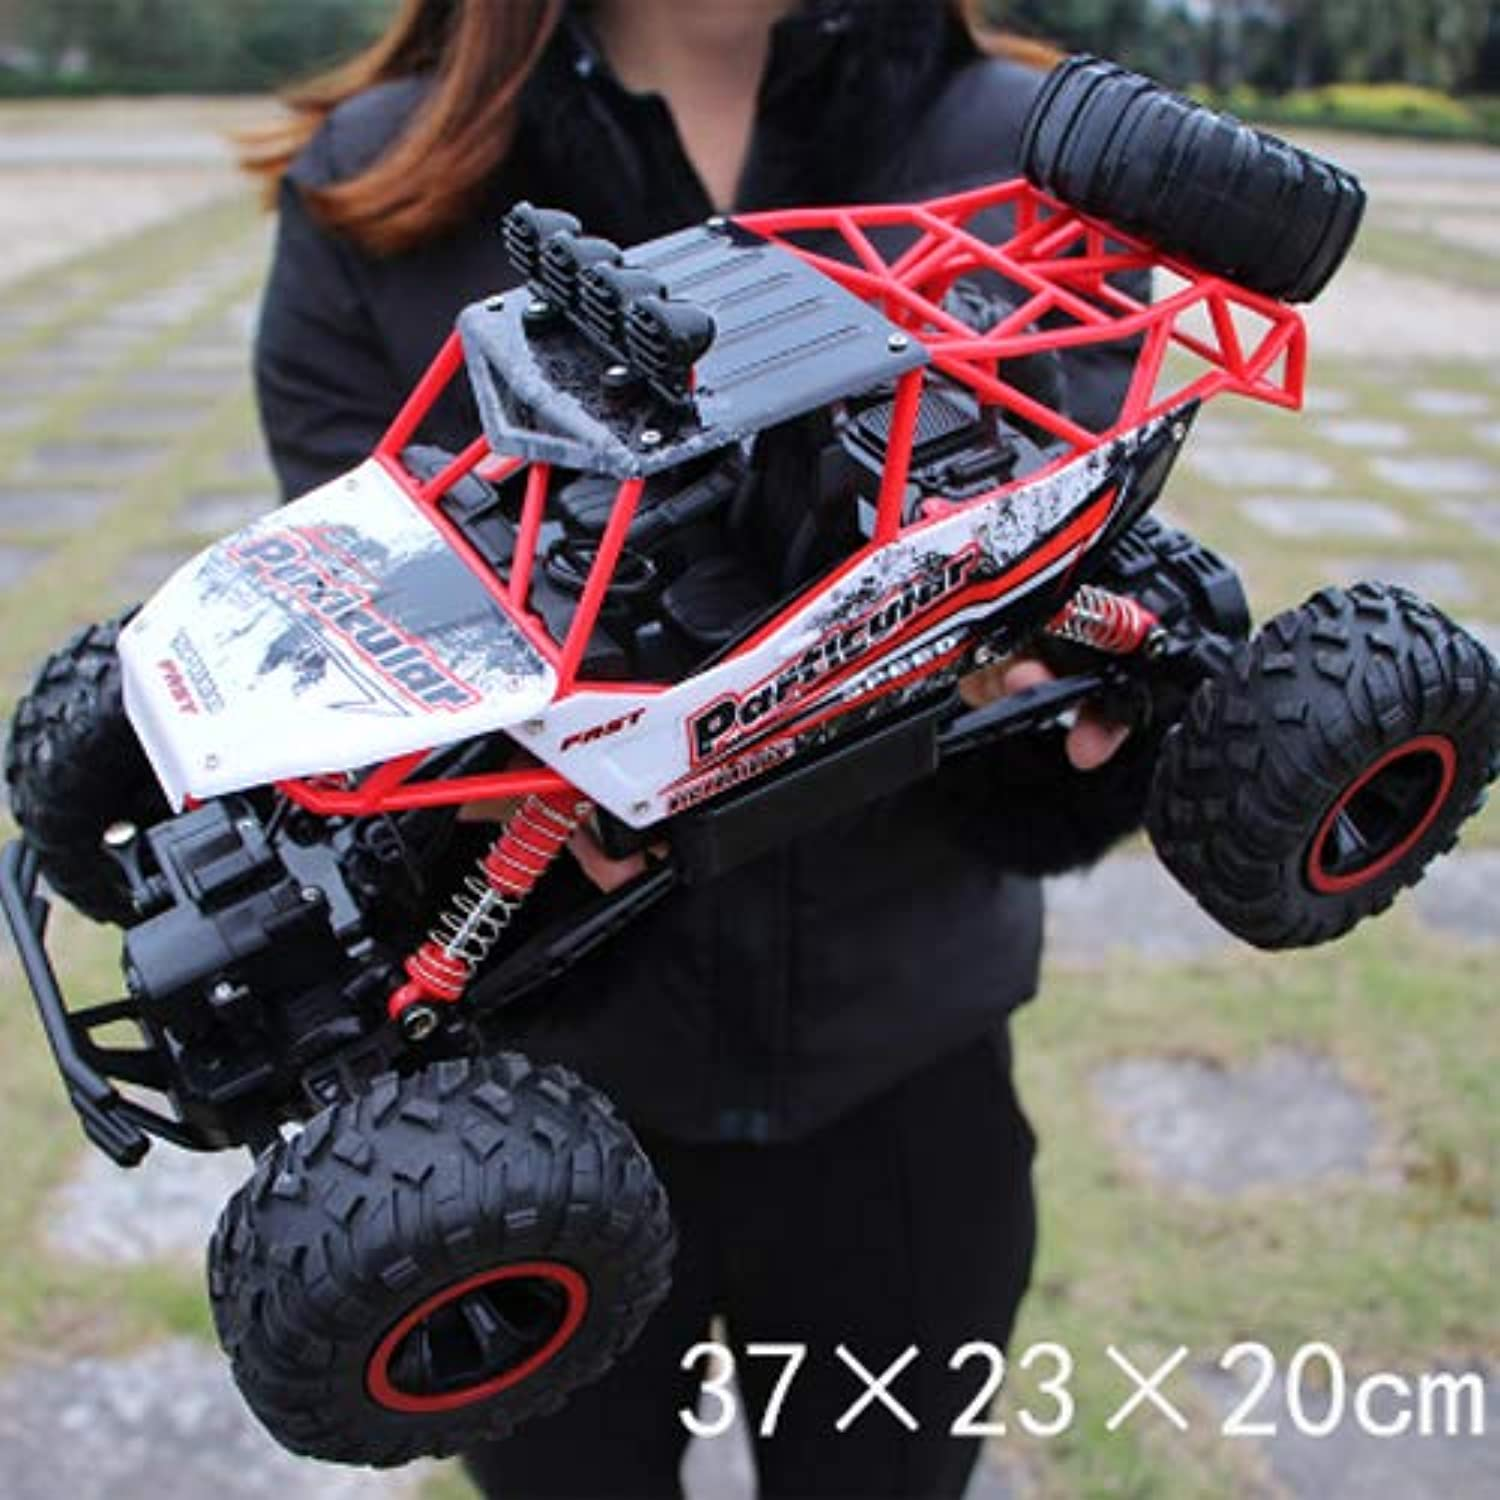 Pinjeer RC Car 1 12 4WD Rock Crawlers 4x4 Driving Car Double Motors Drive Big foot Car Remote Control Car Model OffRoad Vehicle Educational Toy for Kids Age 4+